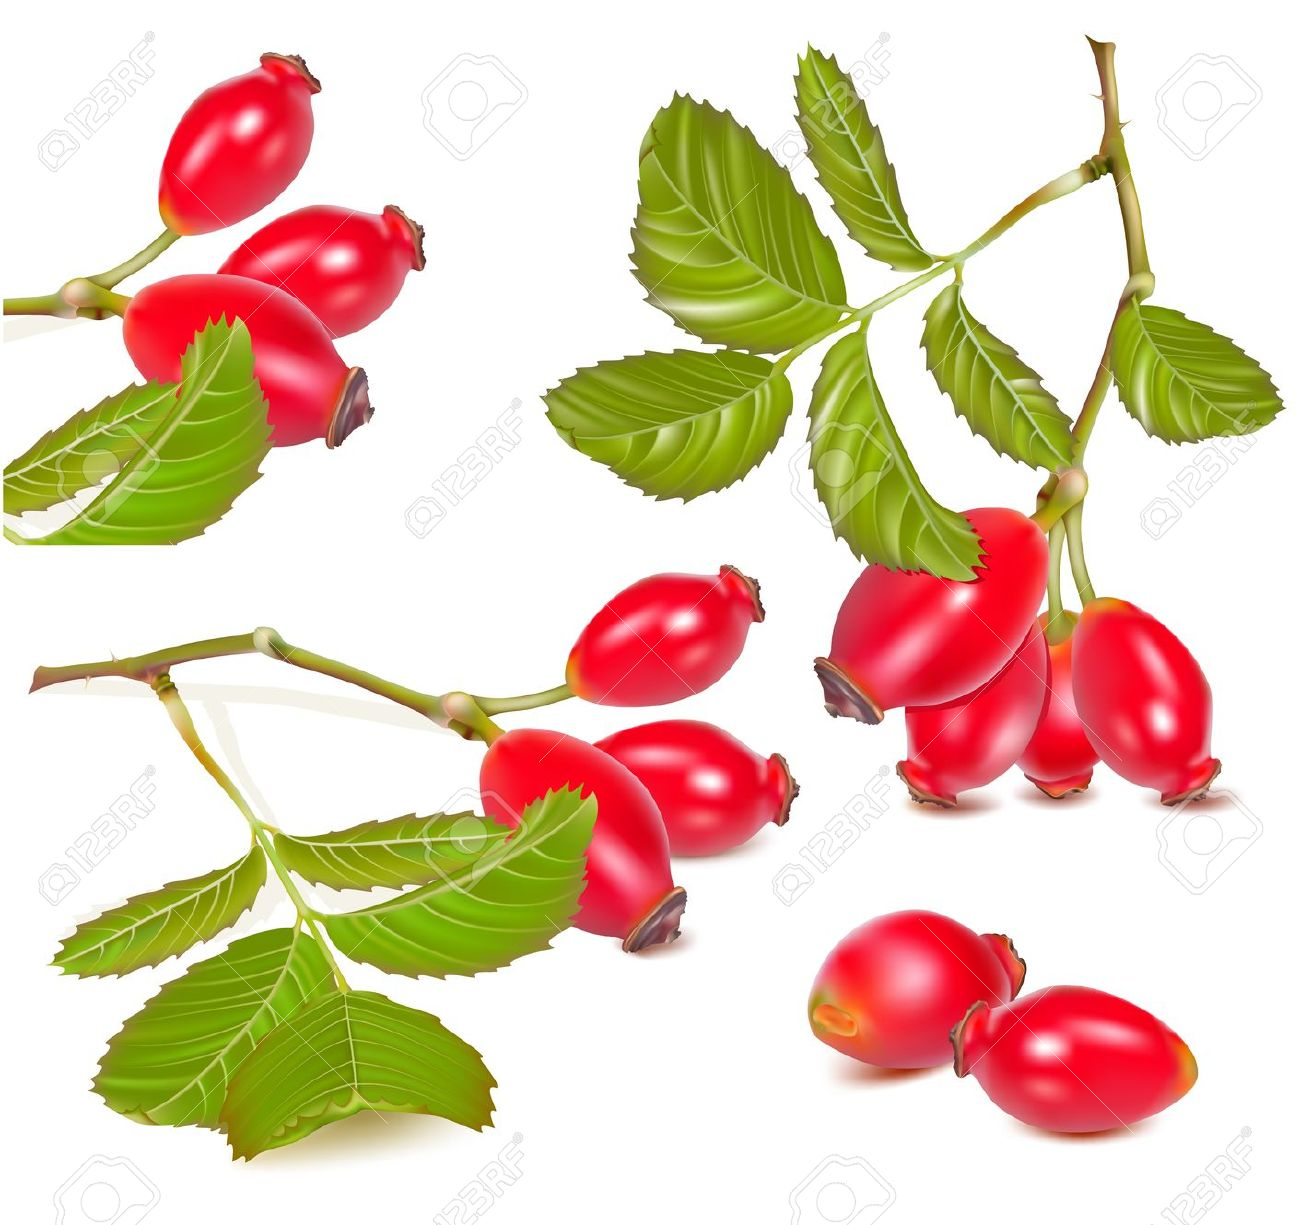 Vector Illustration. Red Rose Hip. Royalty Free Cliparts, Vectors.